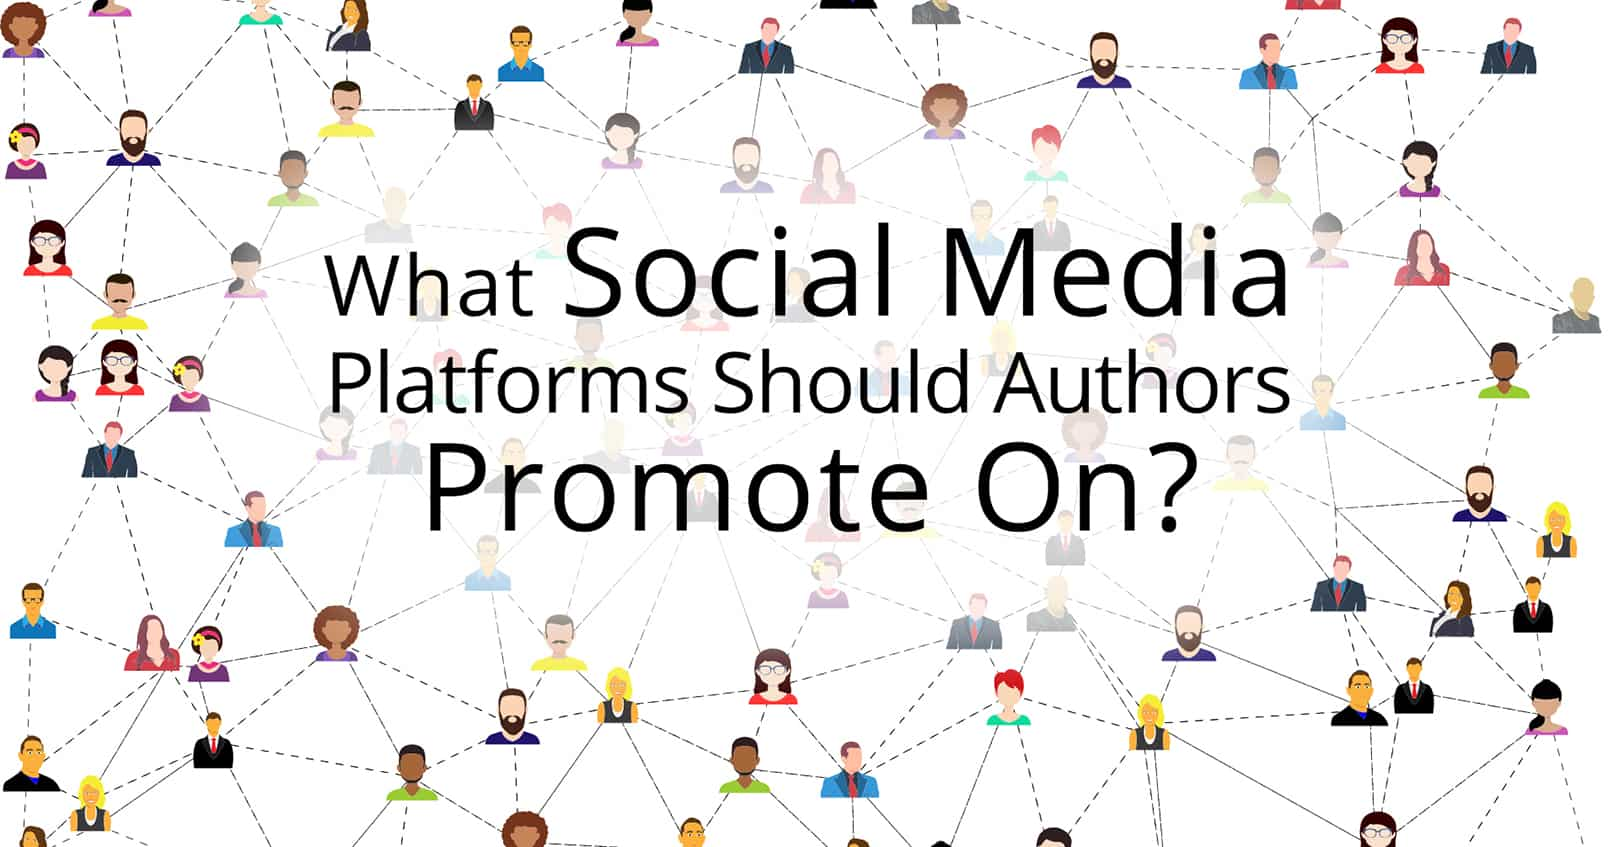 What Social Media Platforms Should Authors Promote On